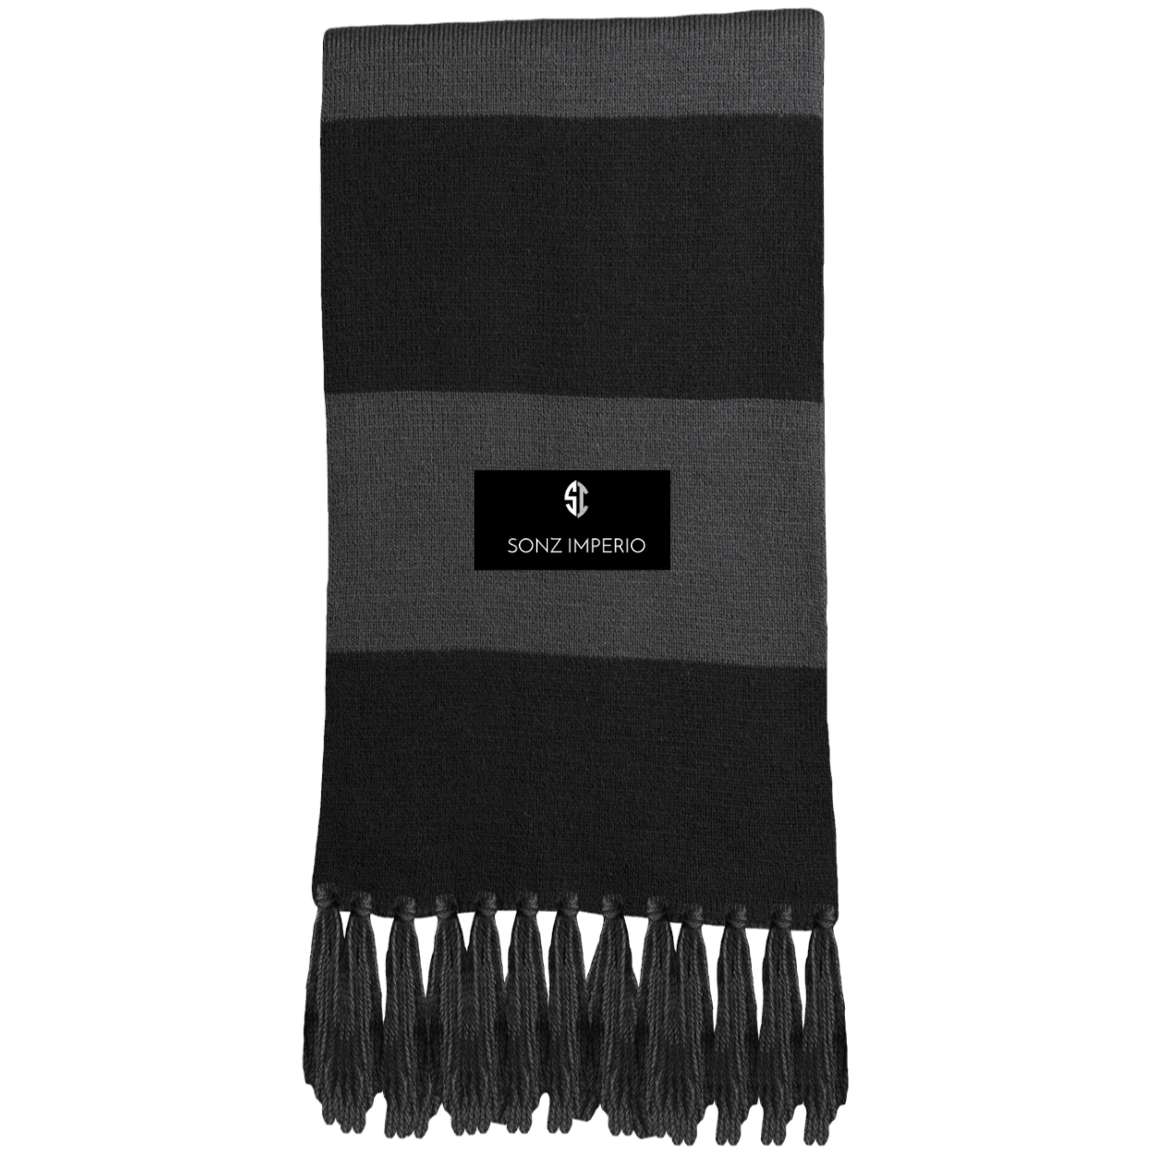 SI Sonz Imperio Scarf